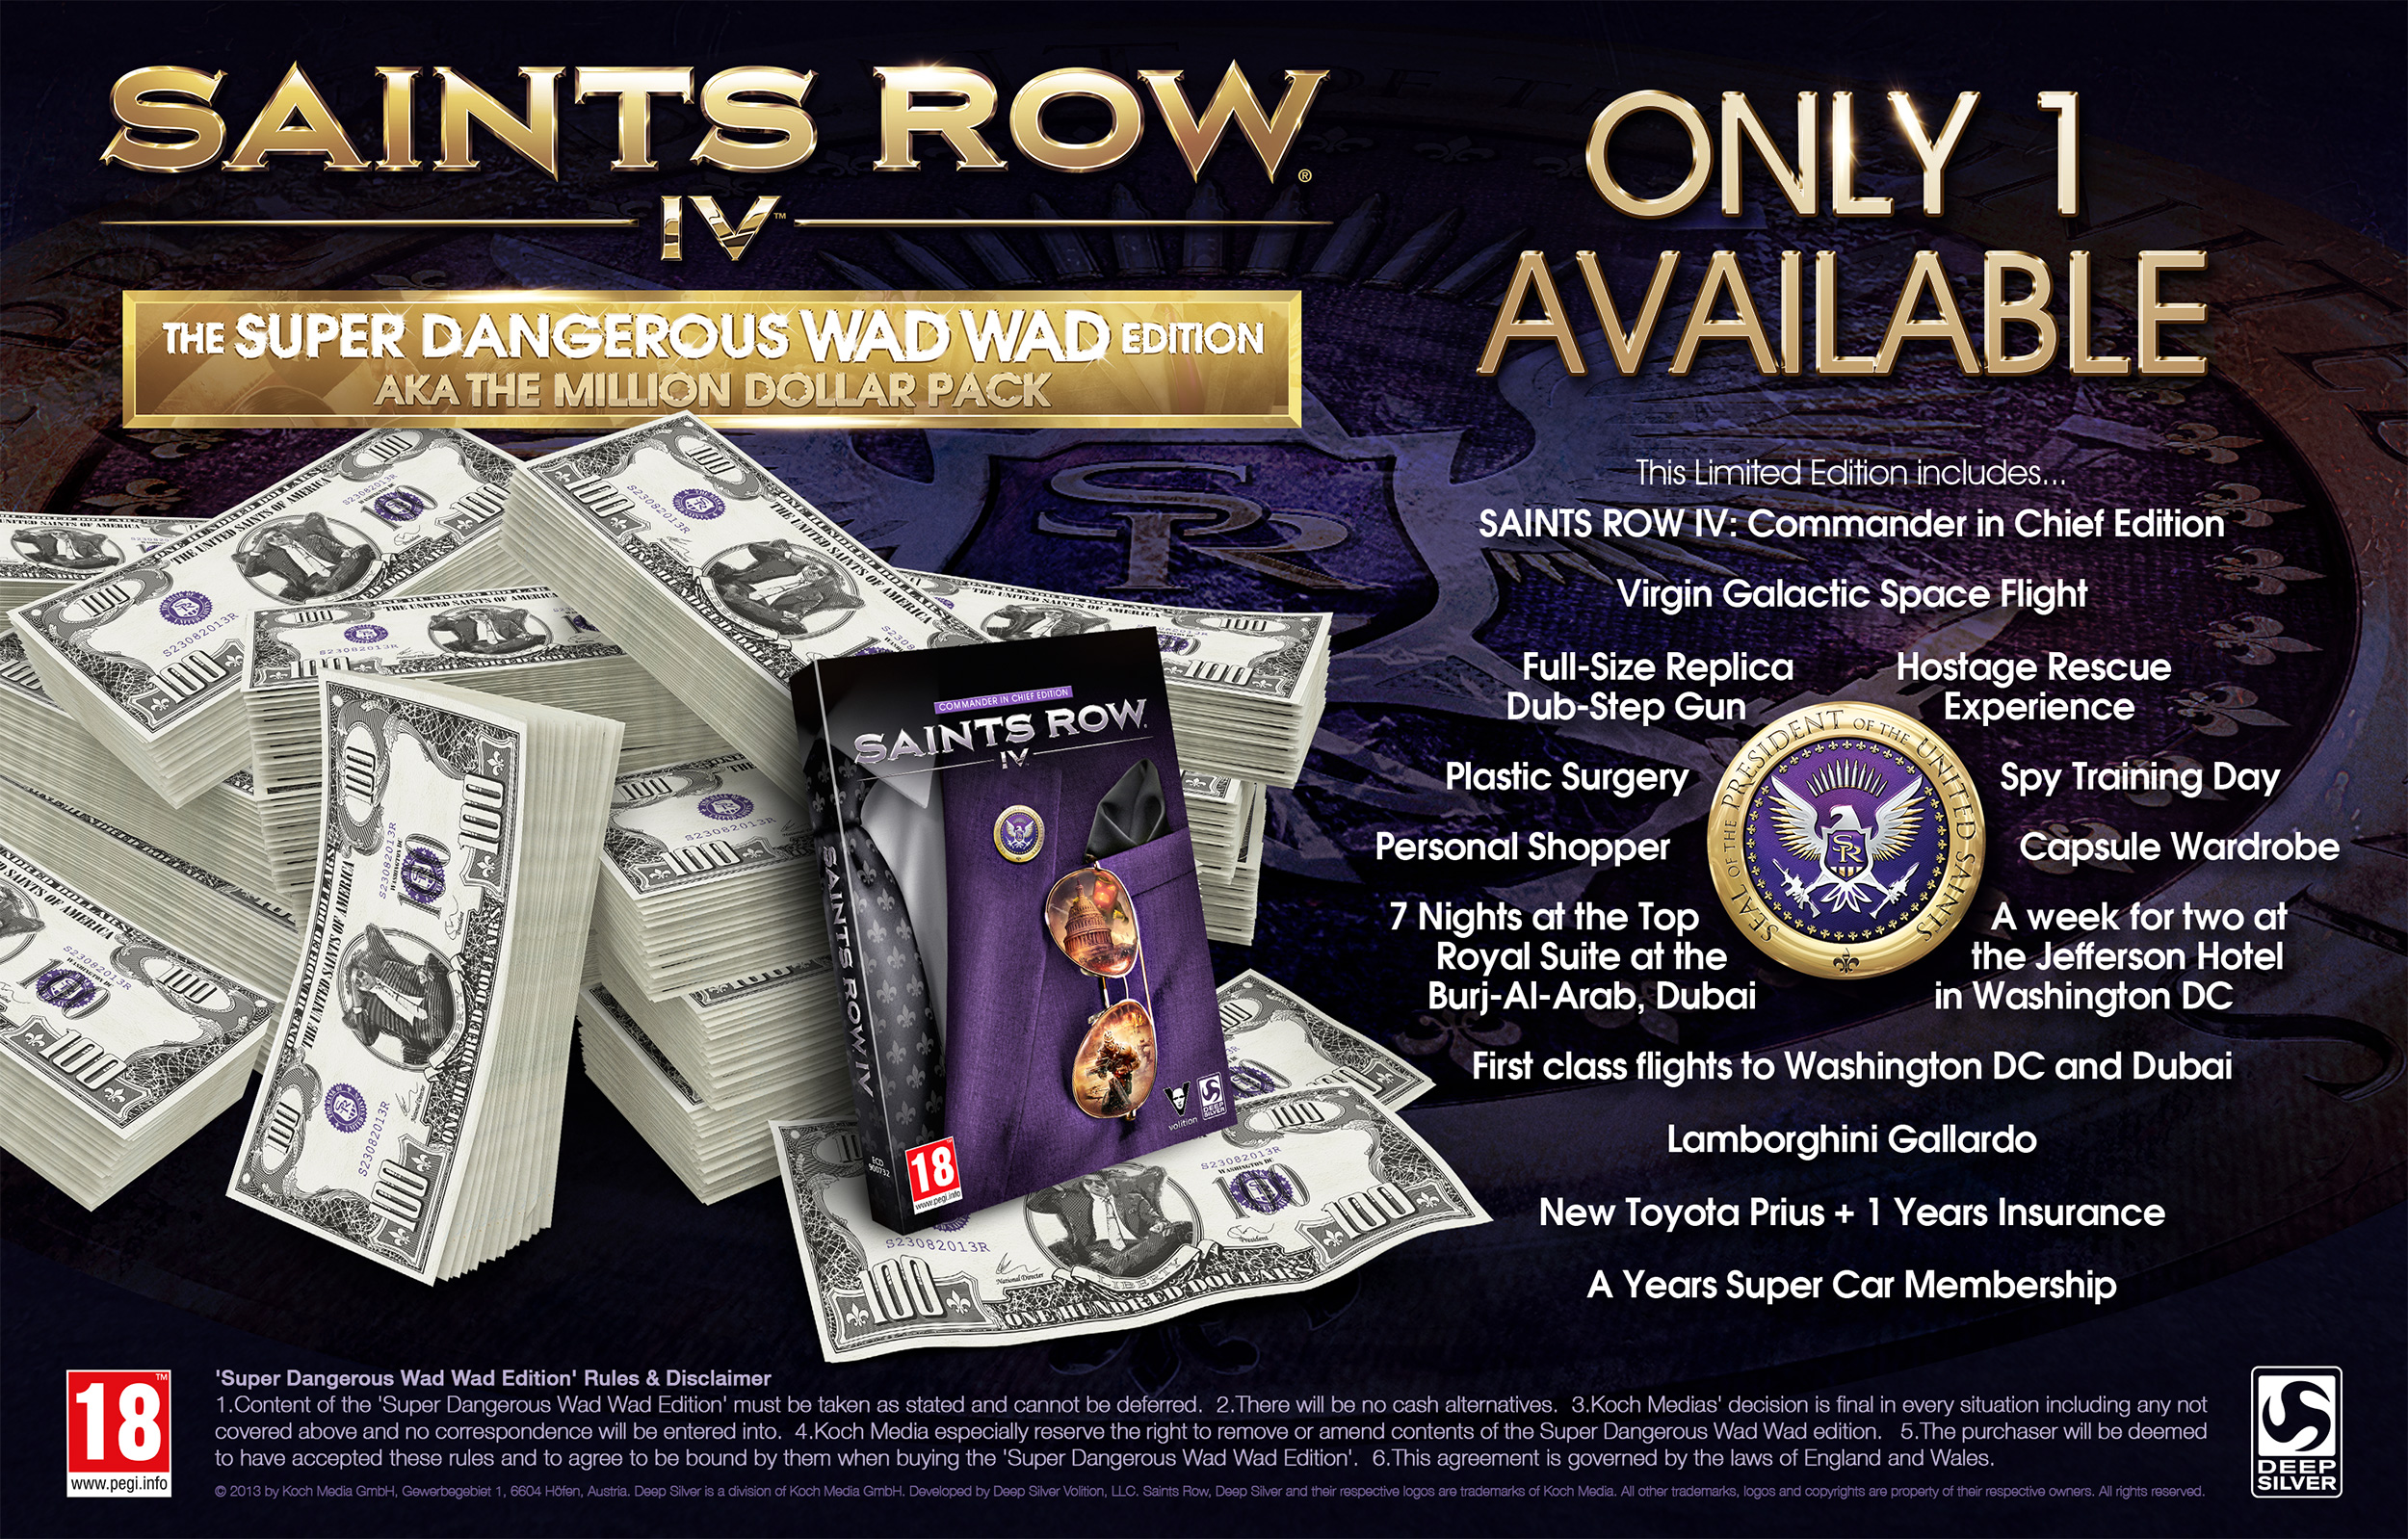 saints row IV edizione un milione di dollari